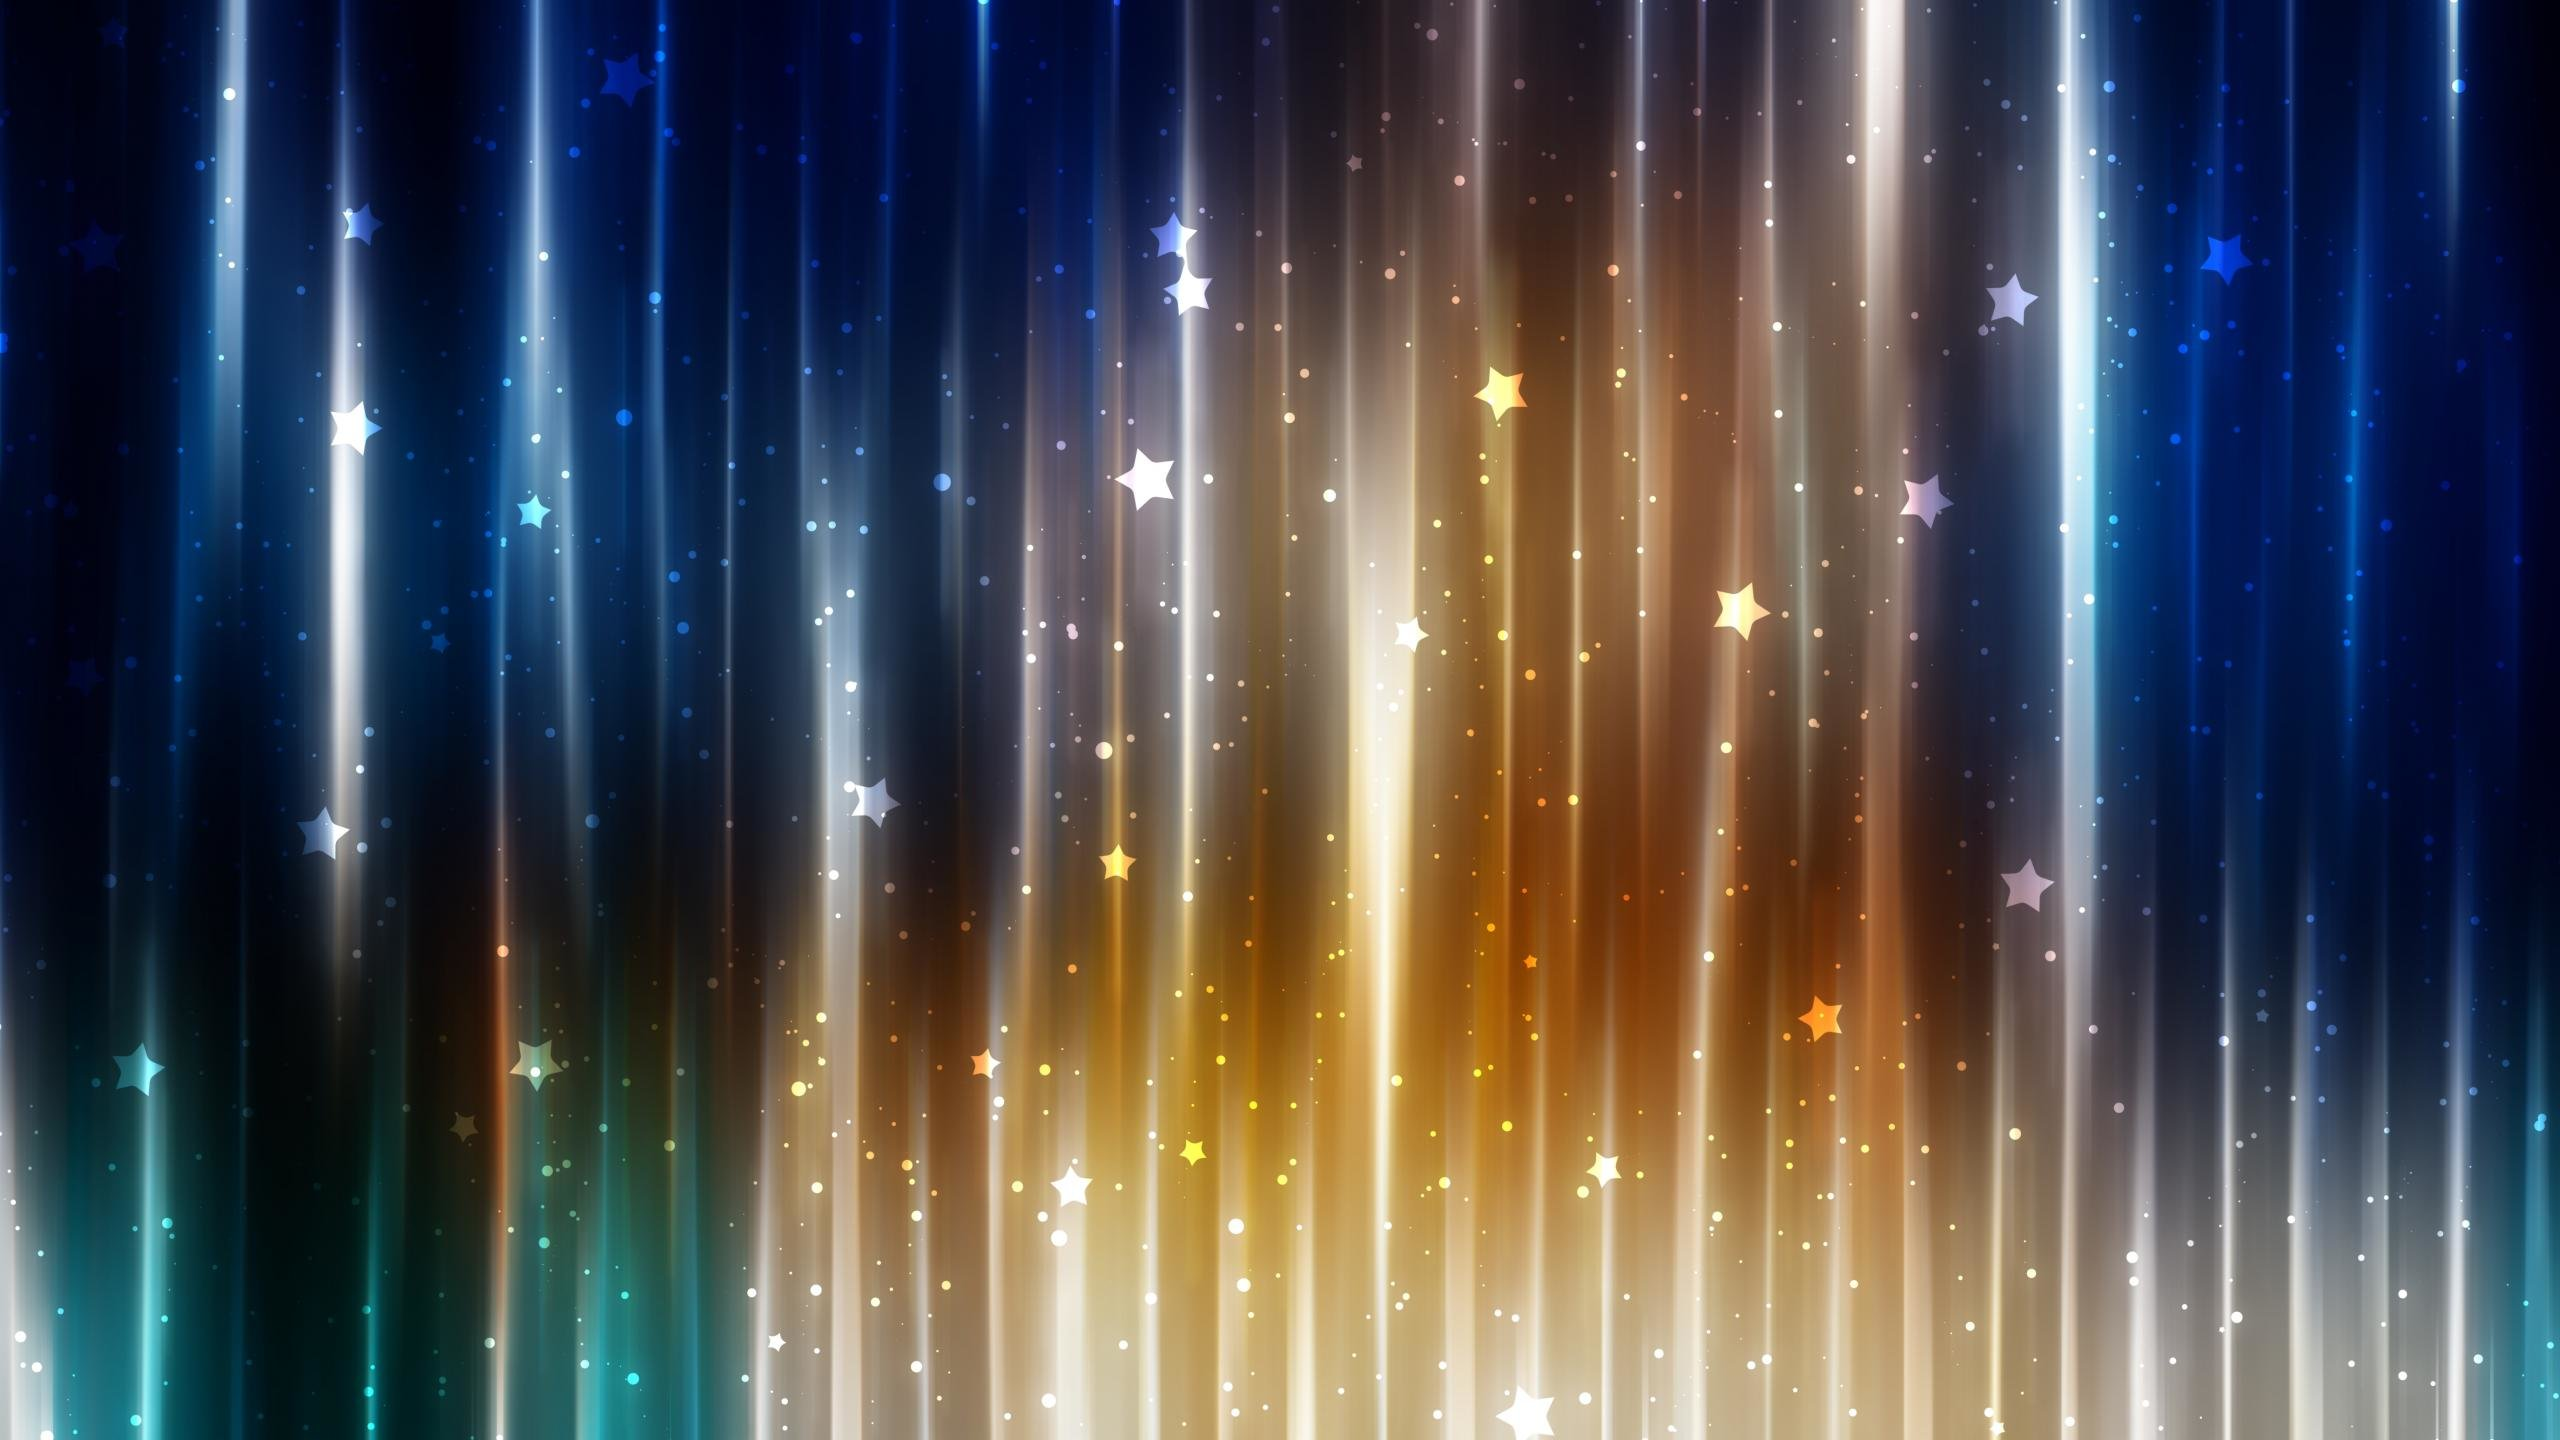 Best Stars Pattern wallpaper ID:271876 for High Resolution hd 2560x1440 desktop